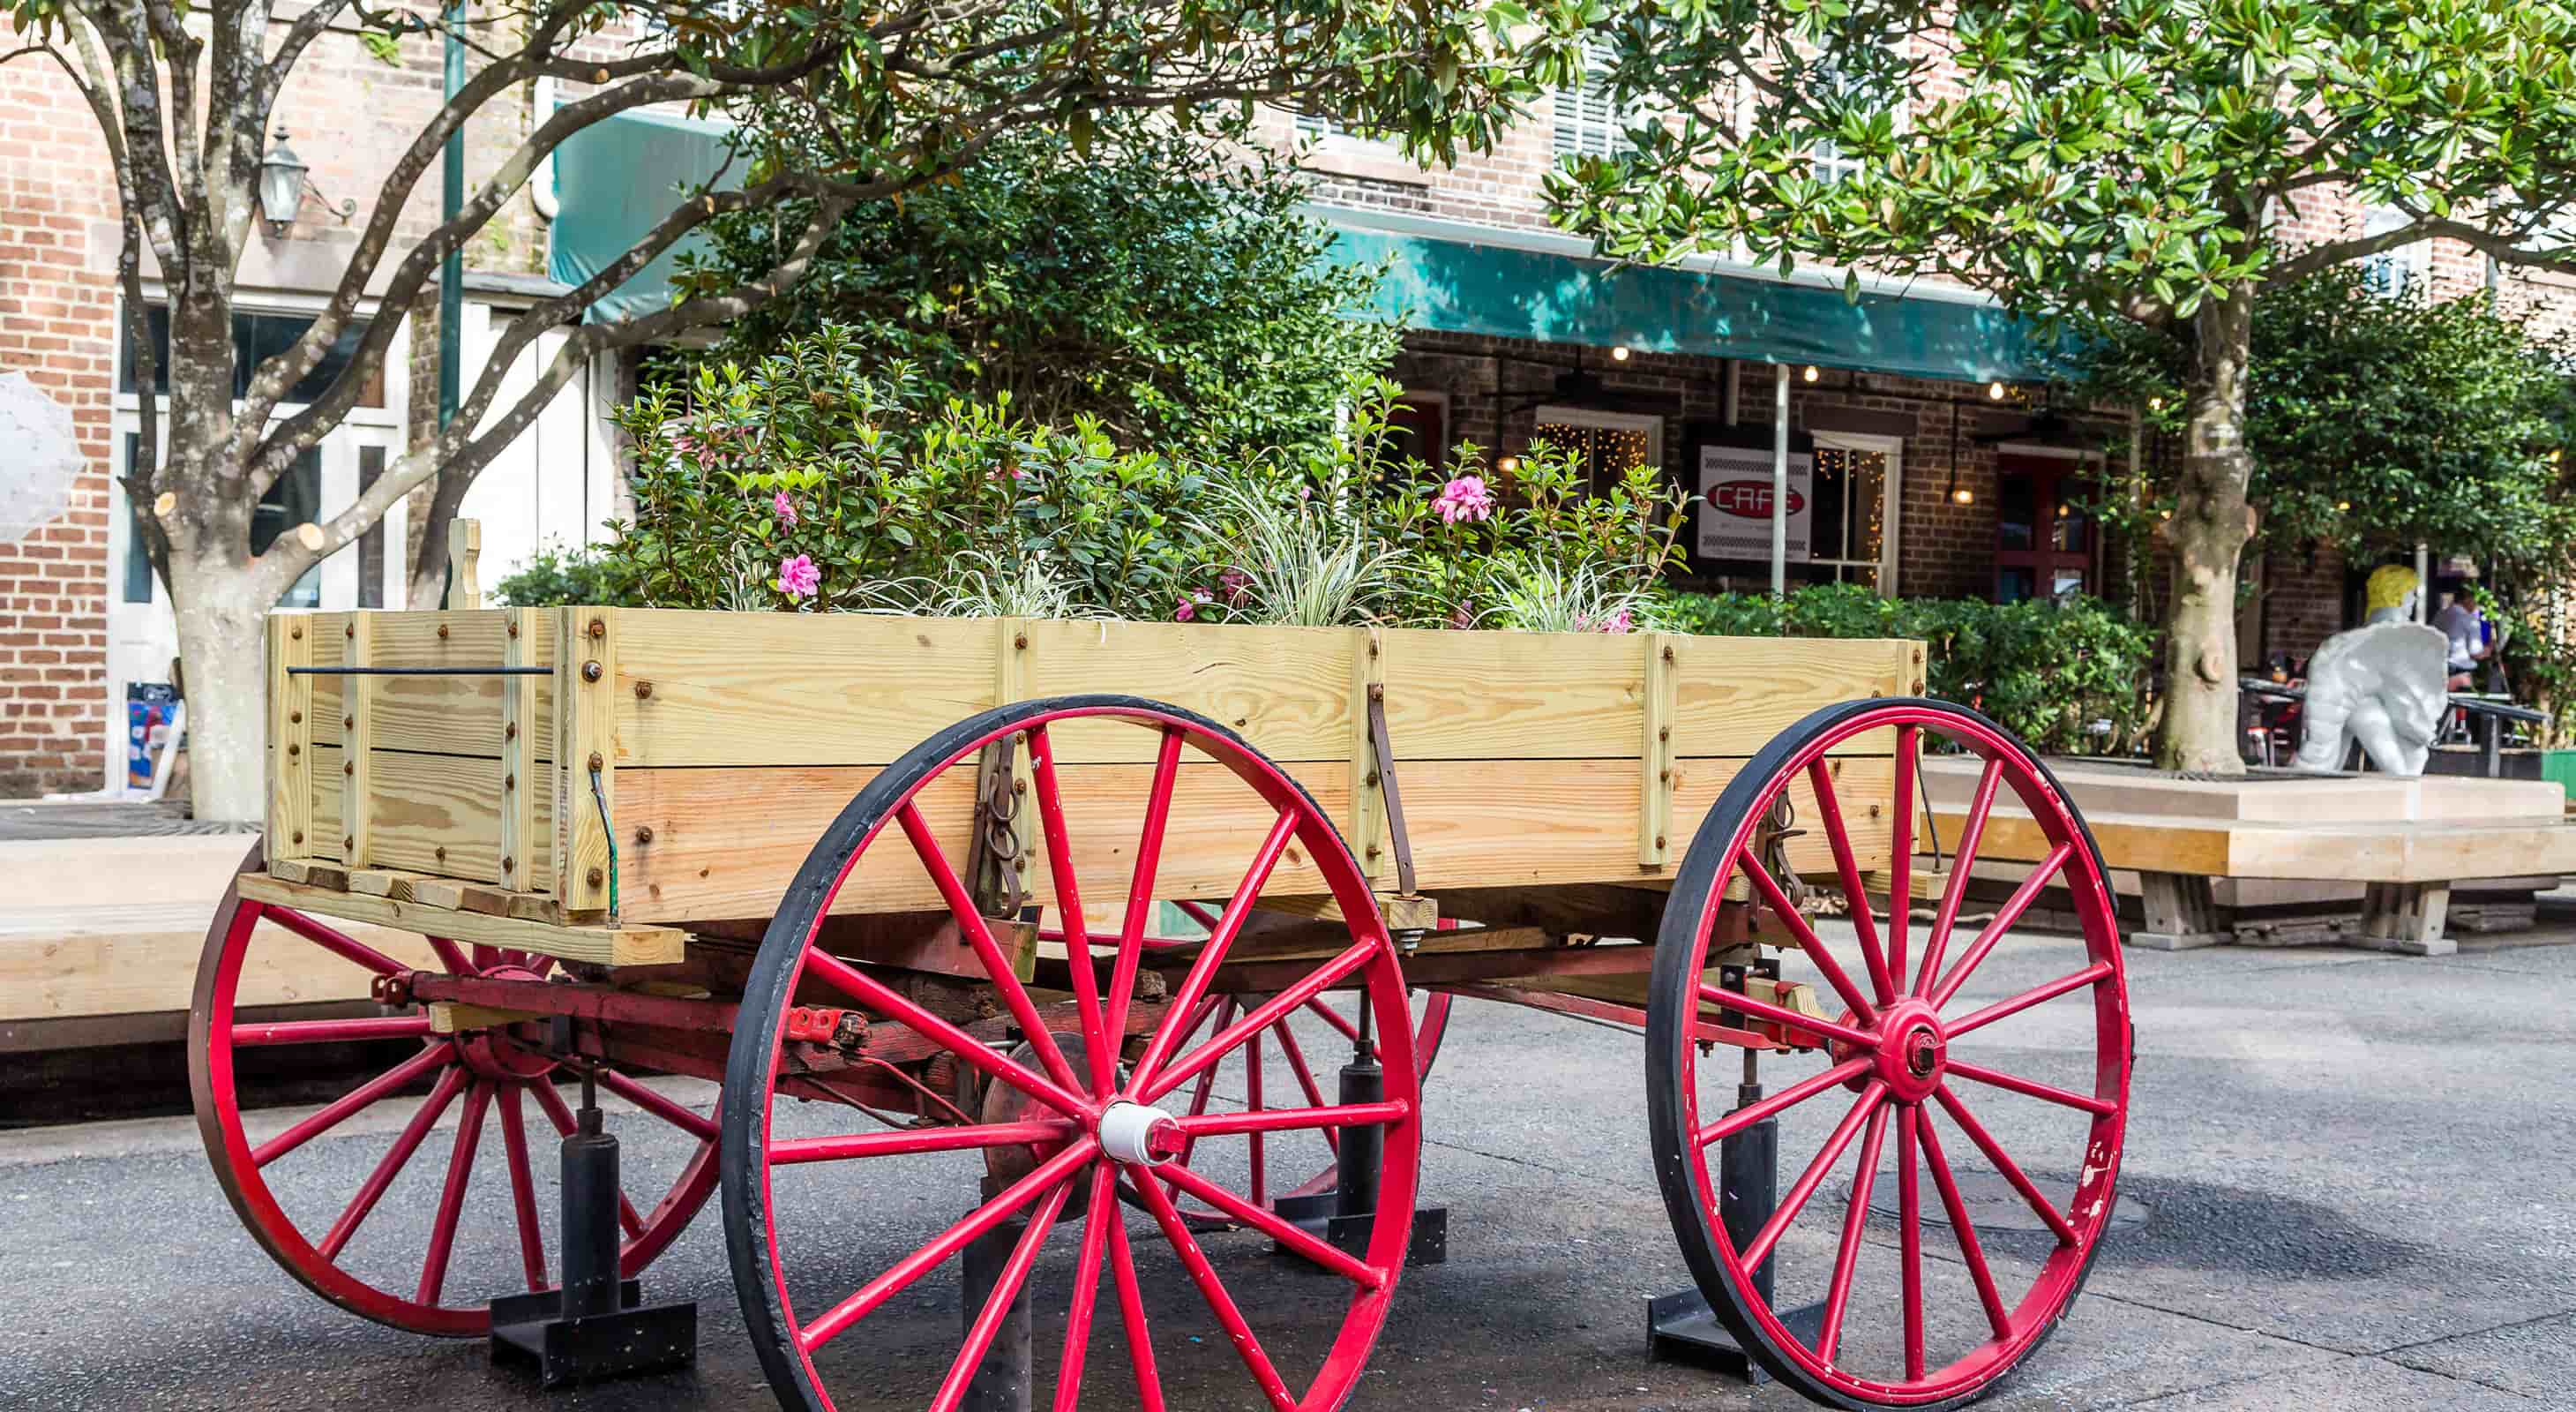 A wagon with produce on a street in Savannah